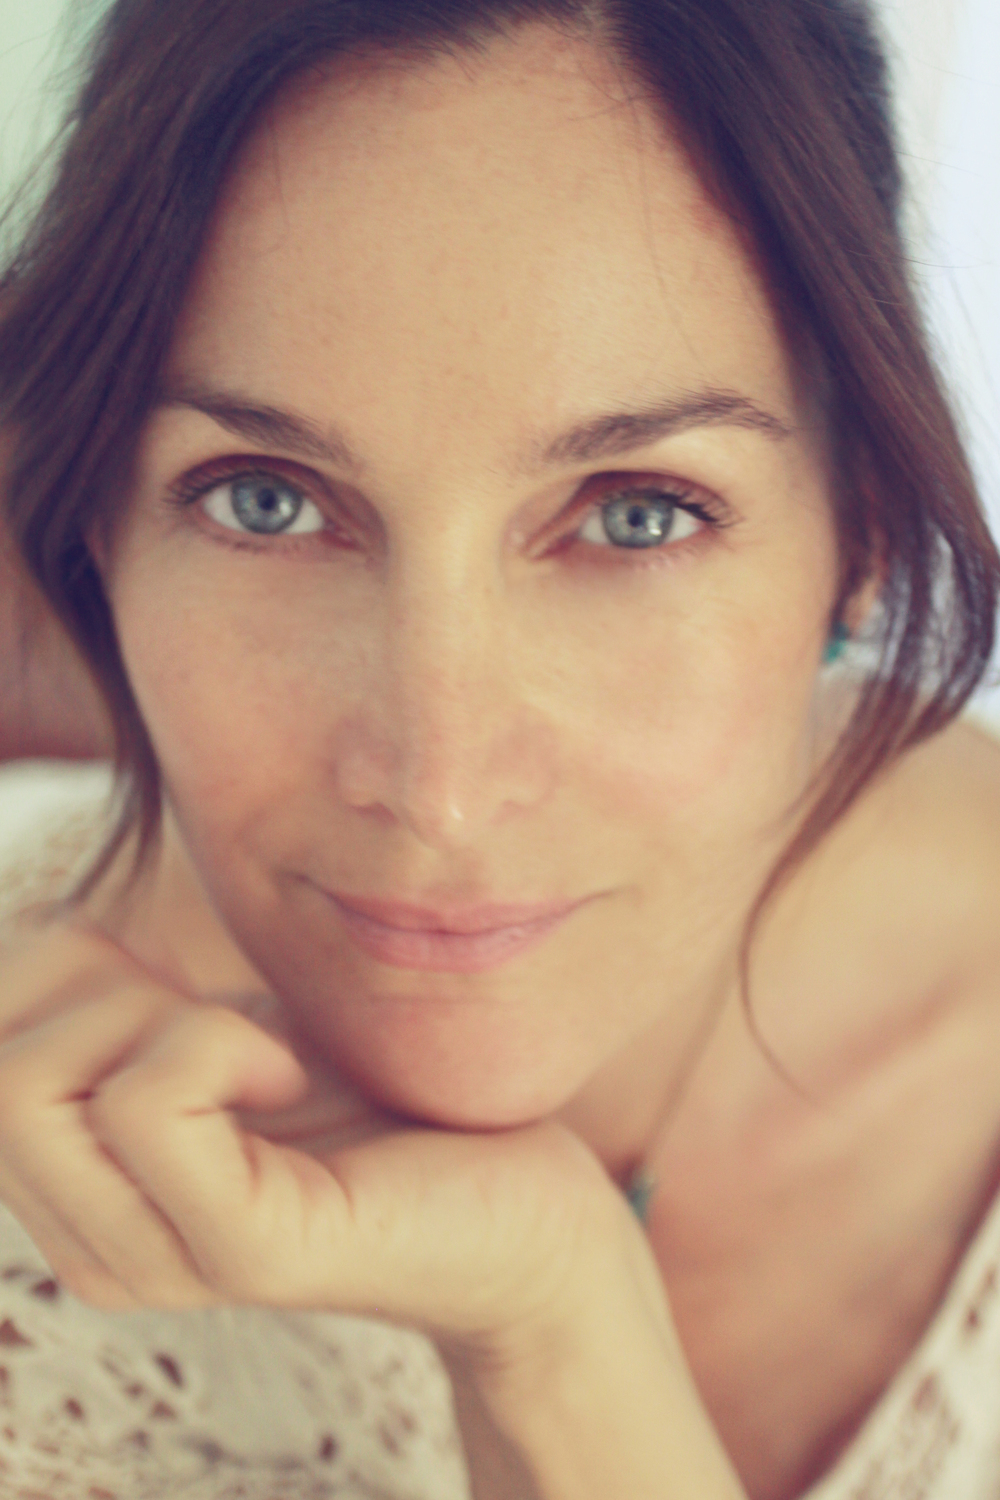 Carrie-Anne Moss. Photos by Denise Andrade-Kroon.